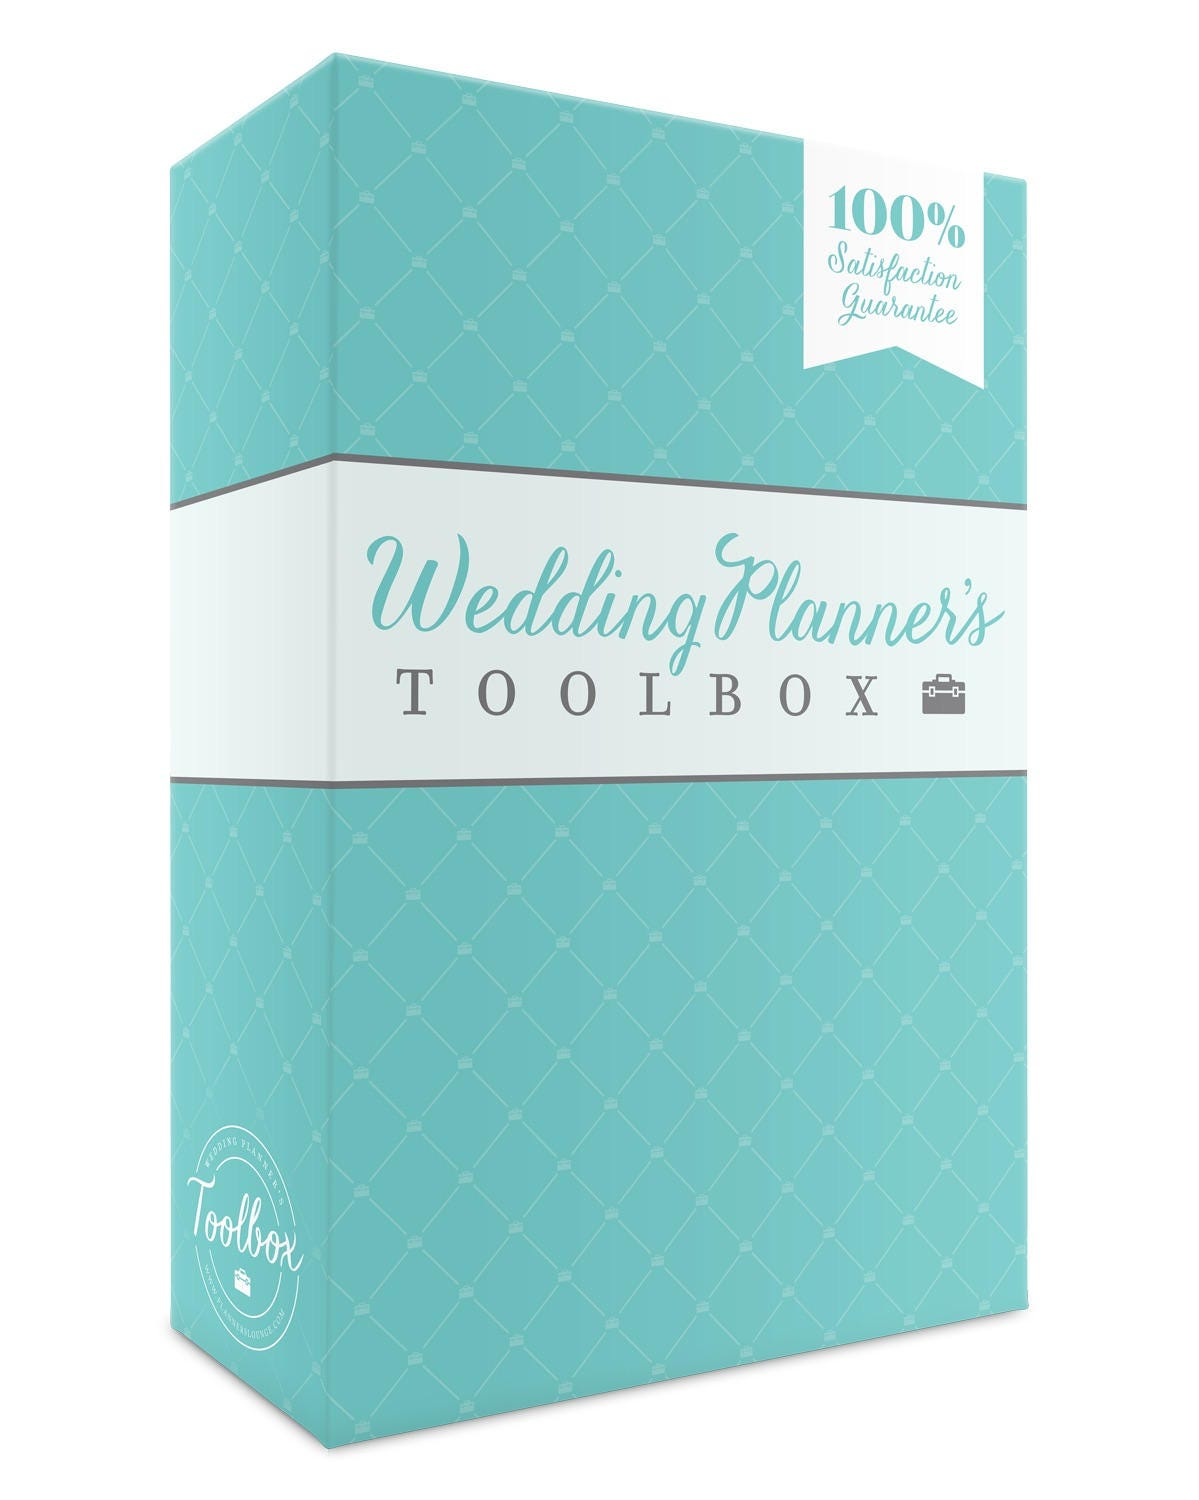 Wedding Planner\'s Toolbox | Etsy